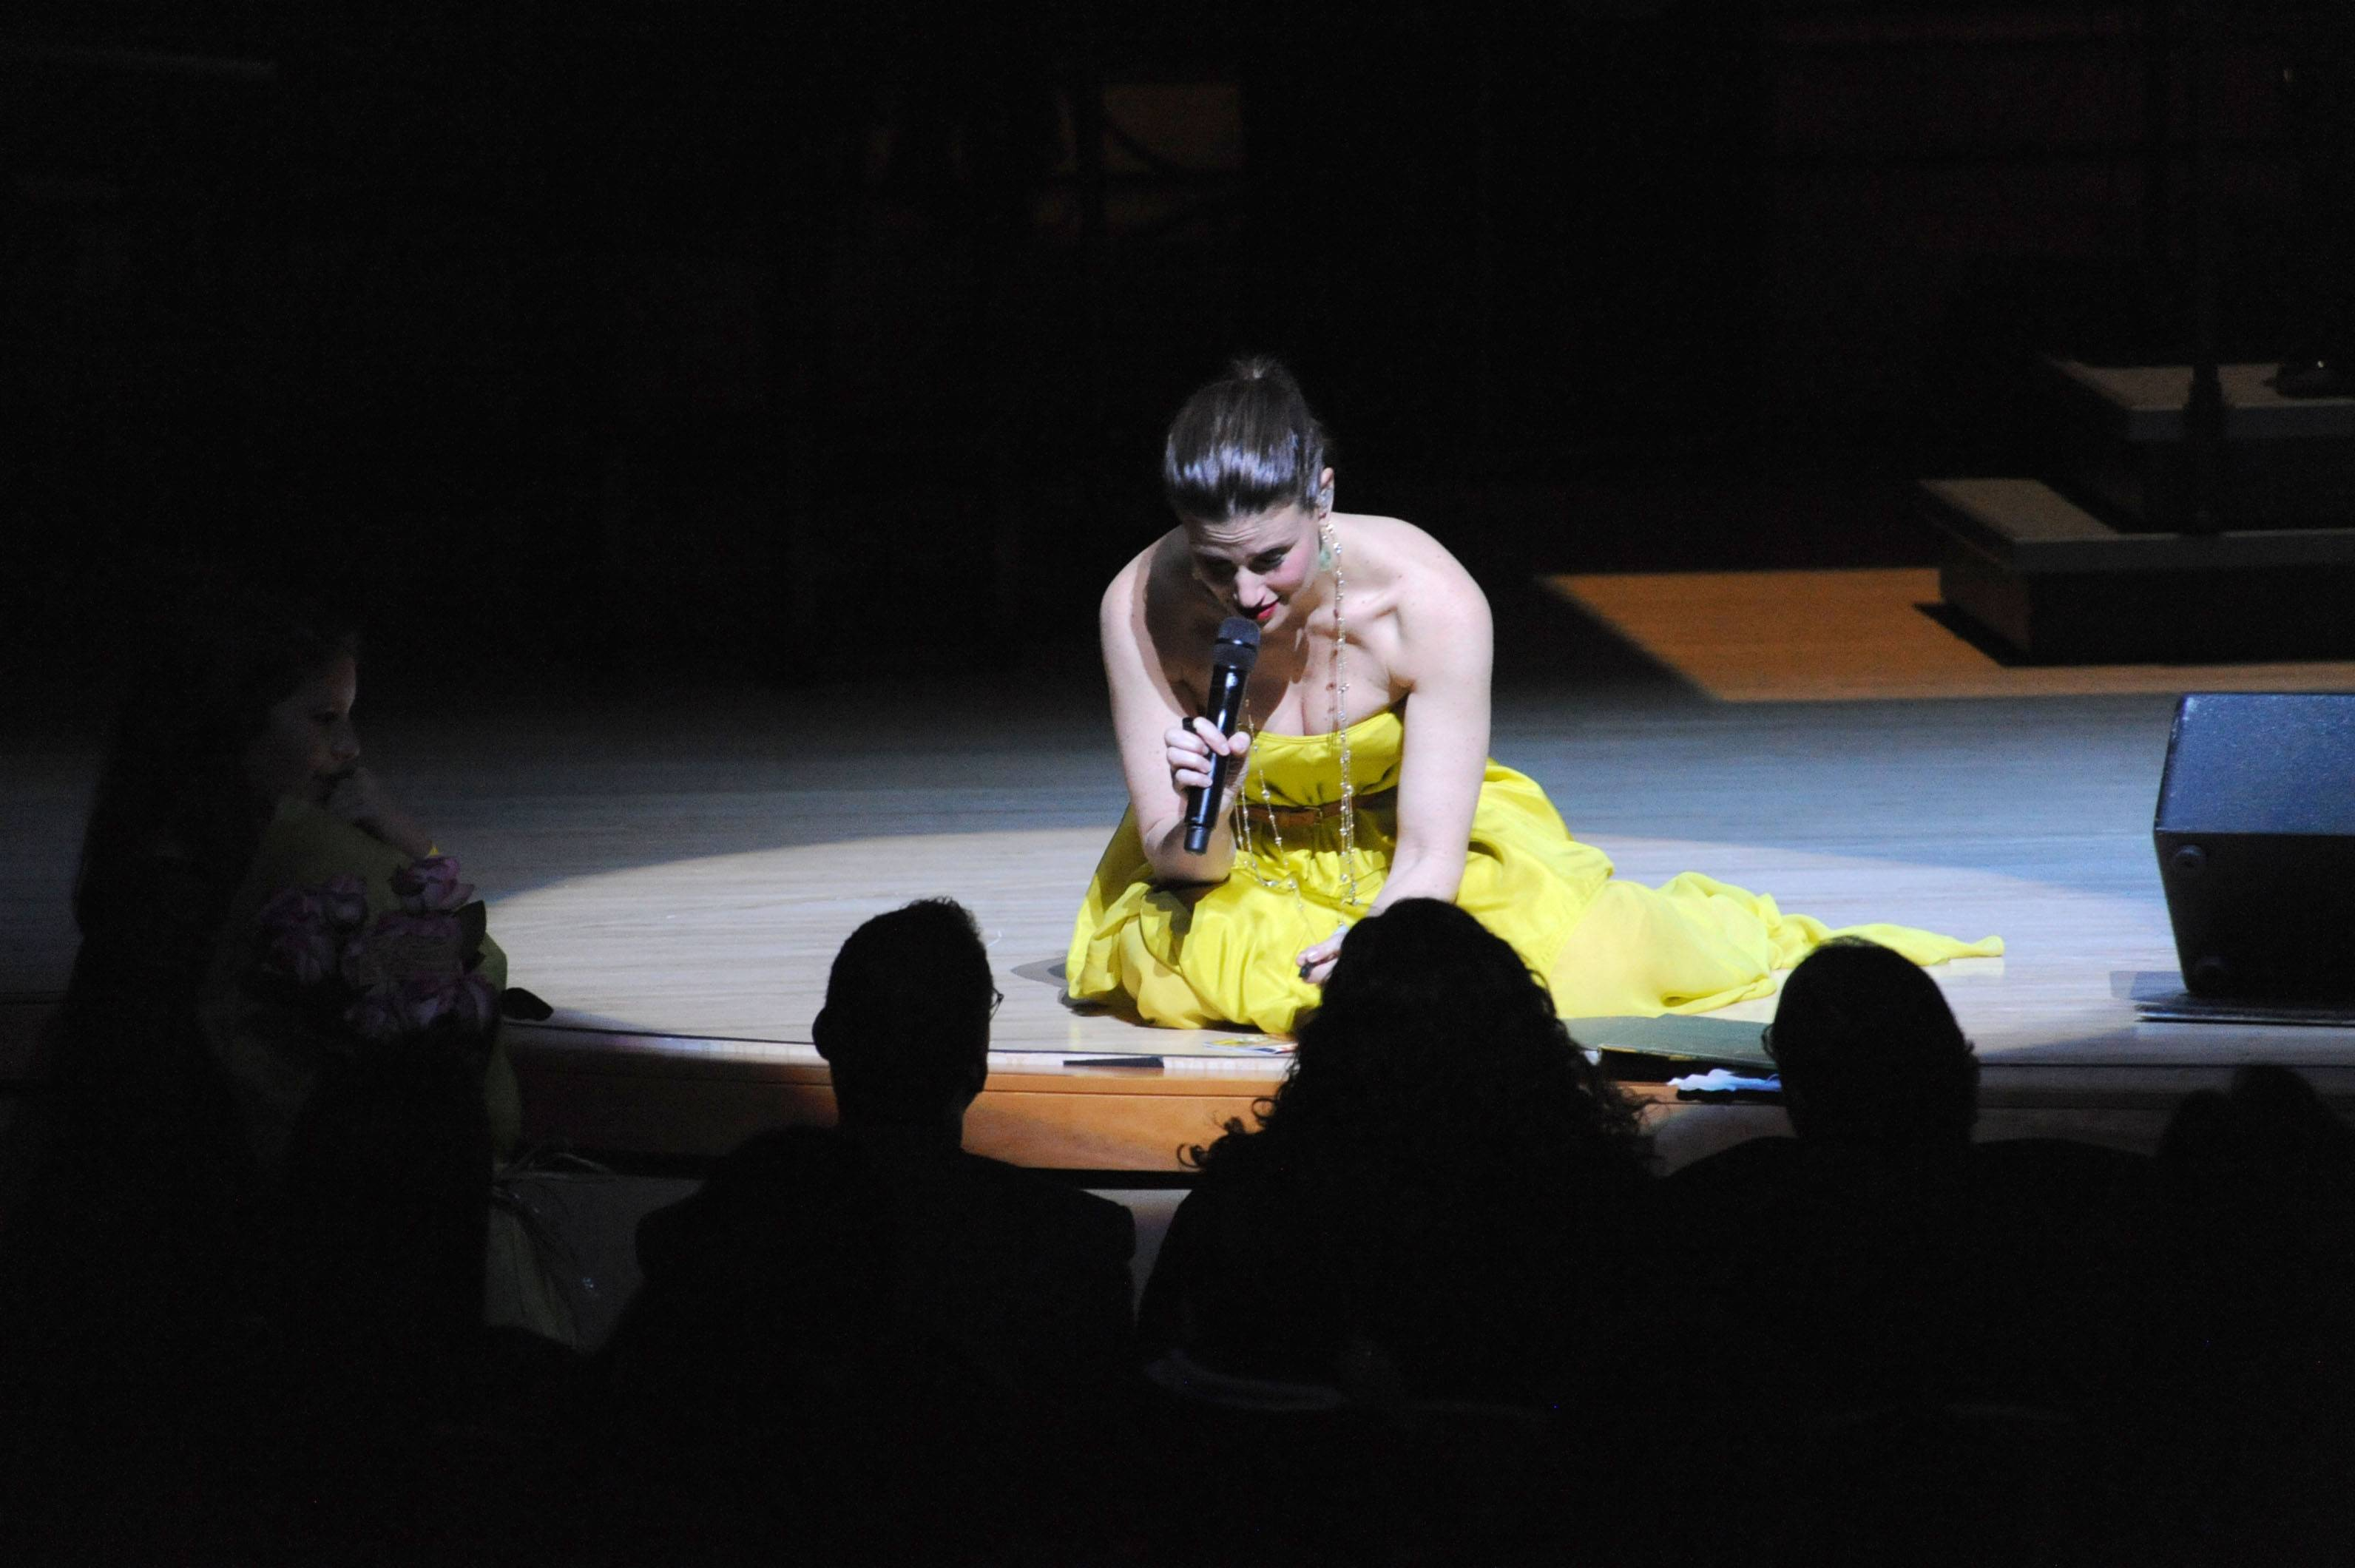 Idina Menzel signing an autograph on stage